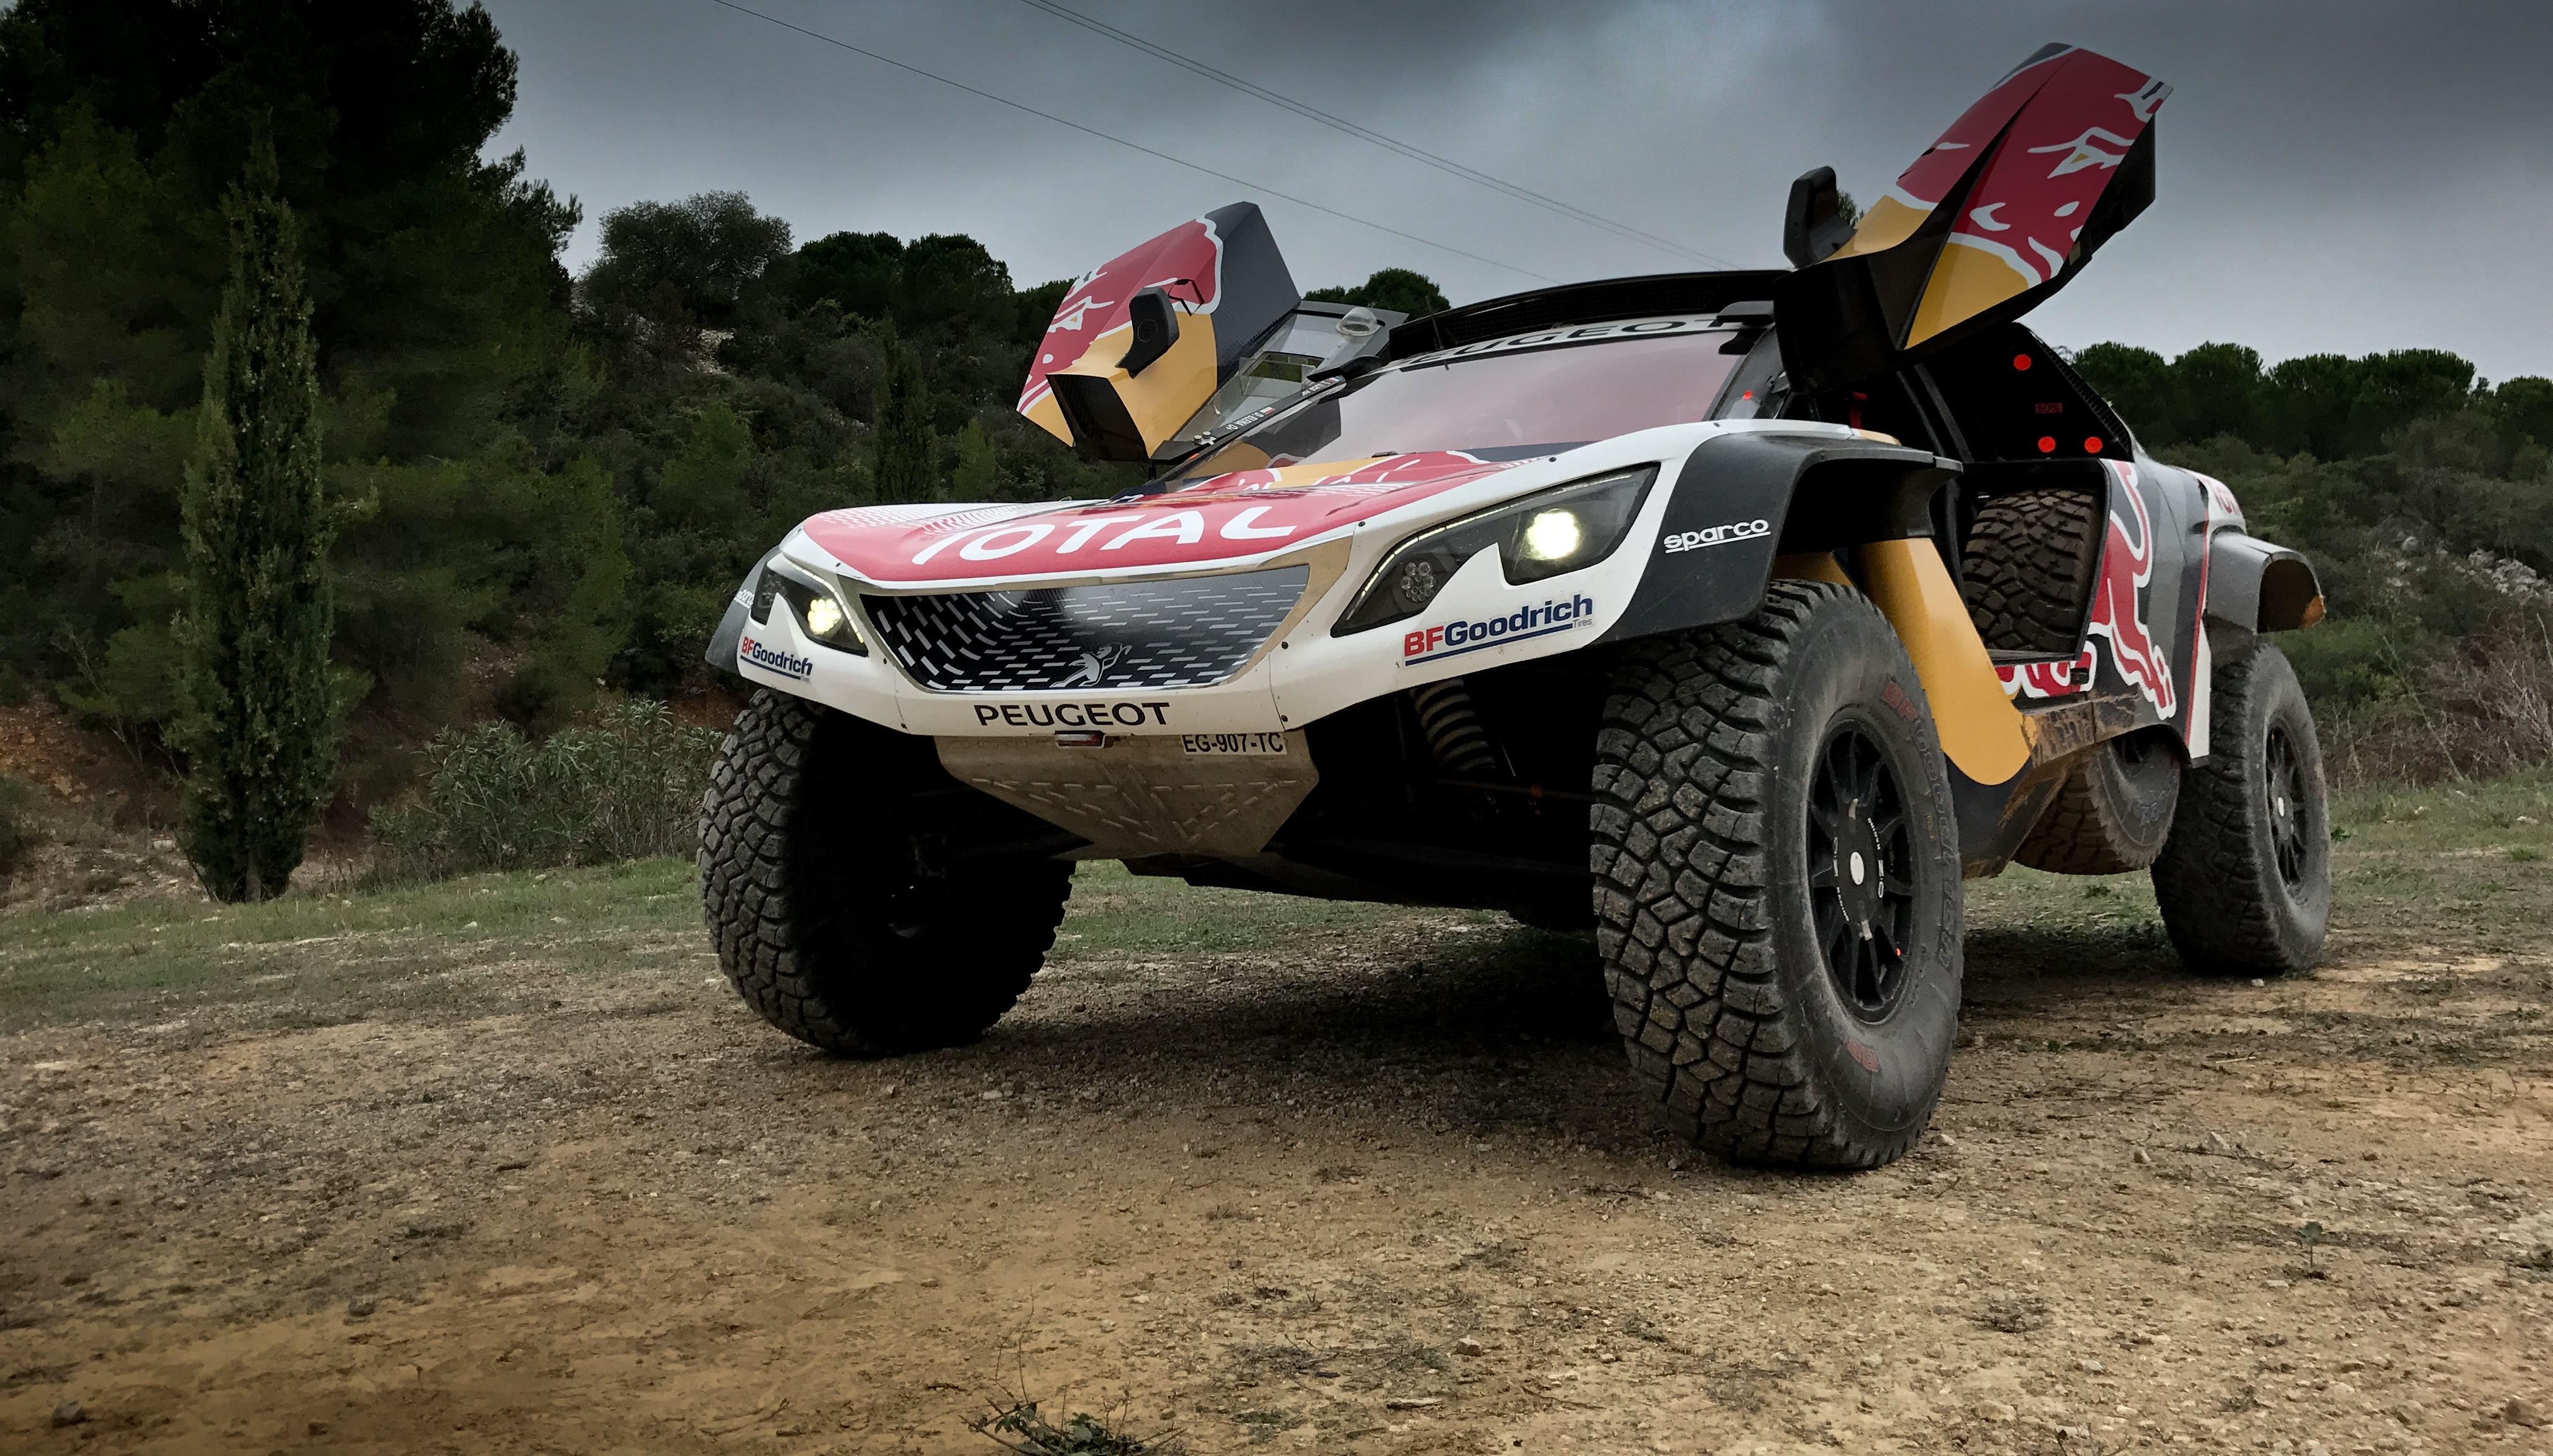 d couverte vid o peugeot 3008 dkr maxi ultime volution. Black Bedroom Furniture Sets. Home Design Ideas